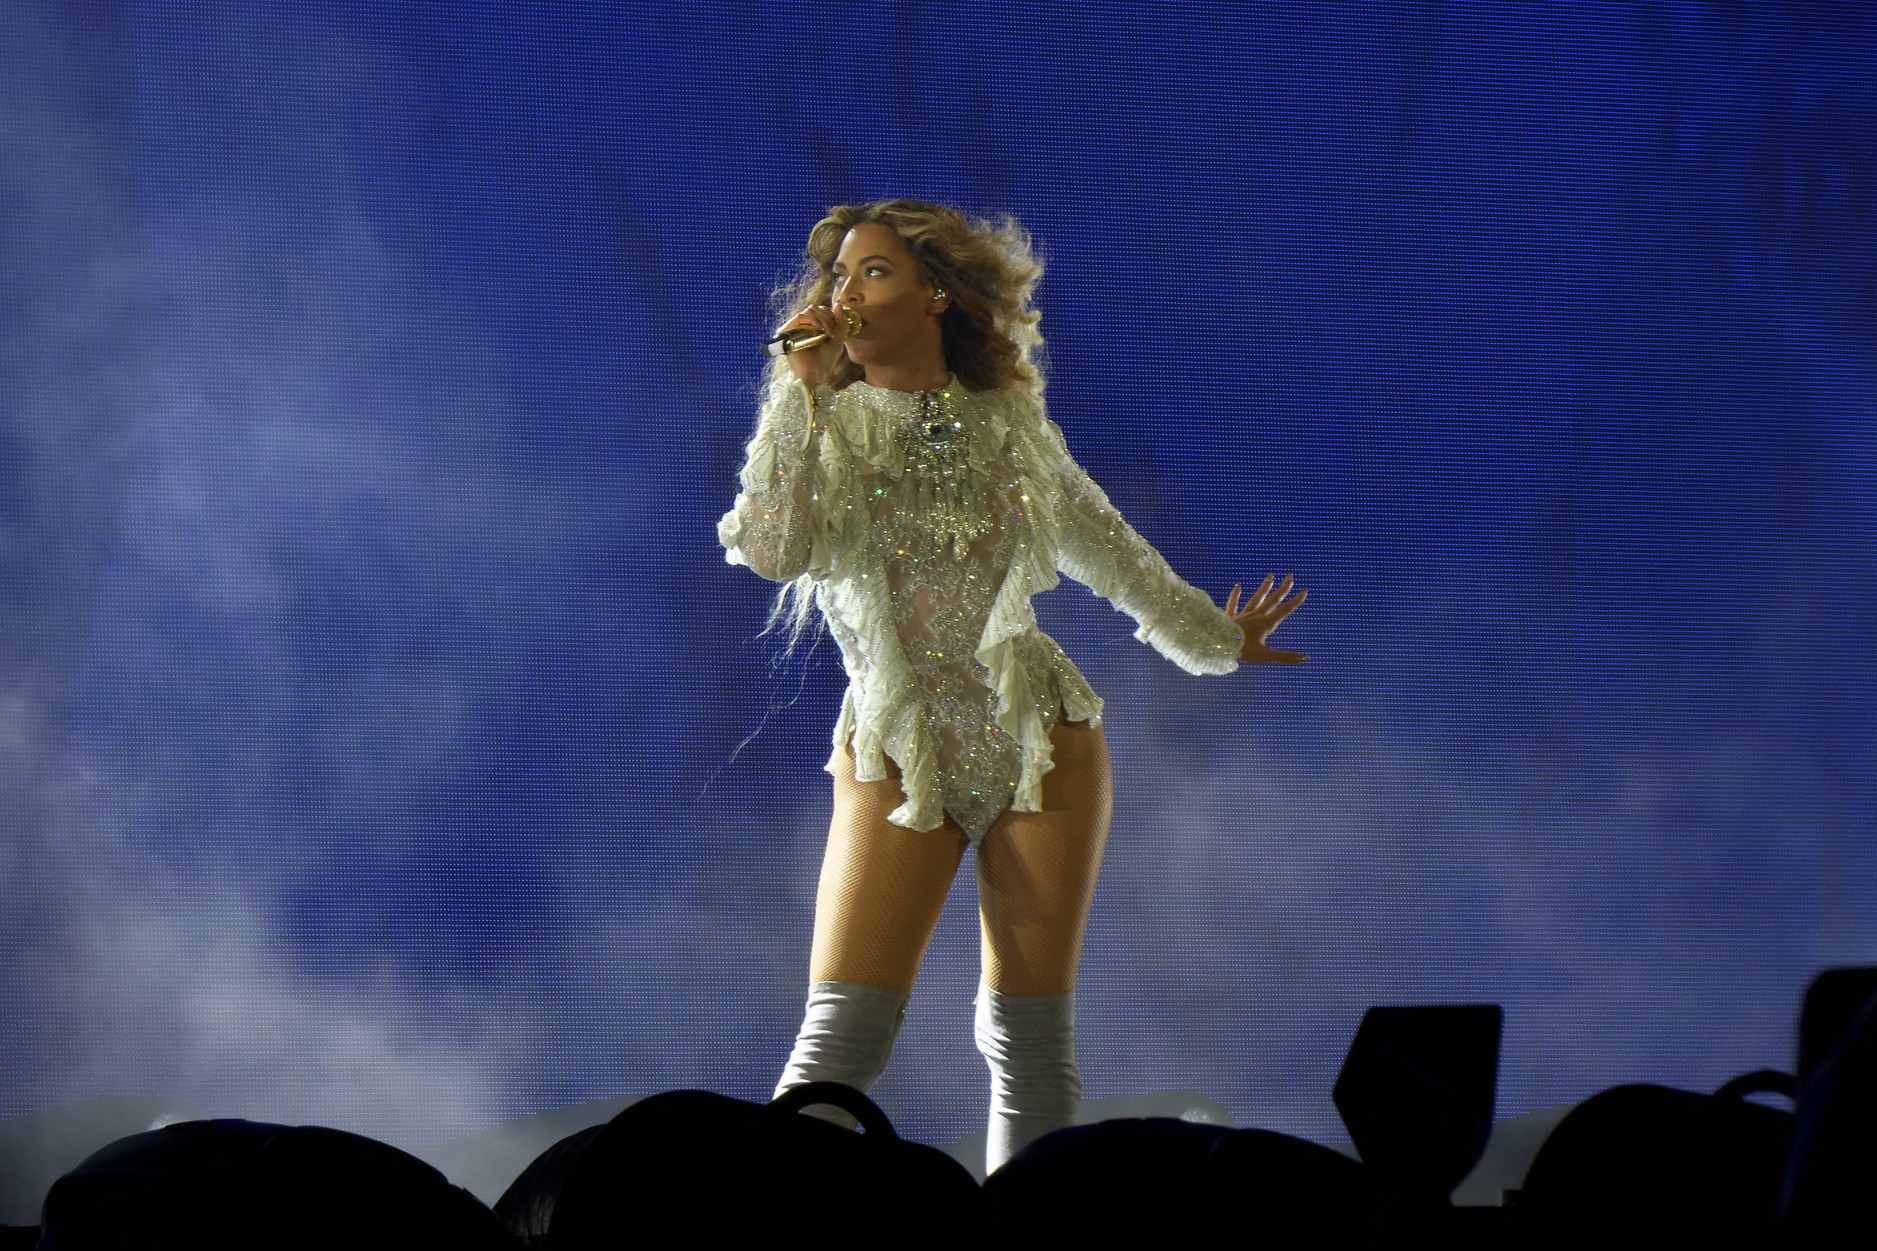 Beyoncé's Former Drummer Says the Singer Controls Her with 'Extreme Witchcraft'